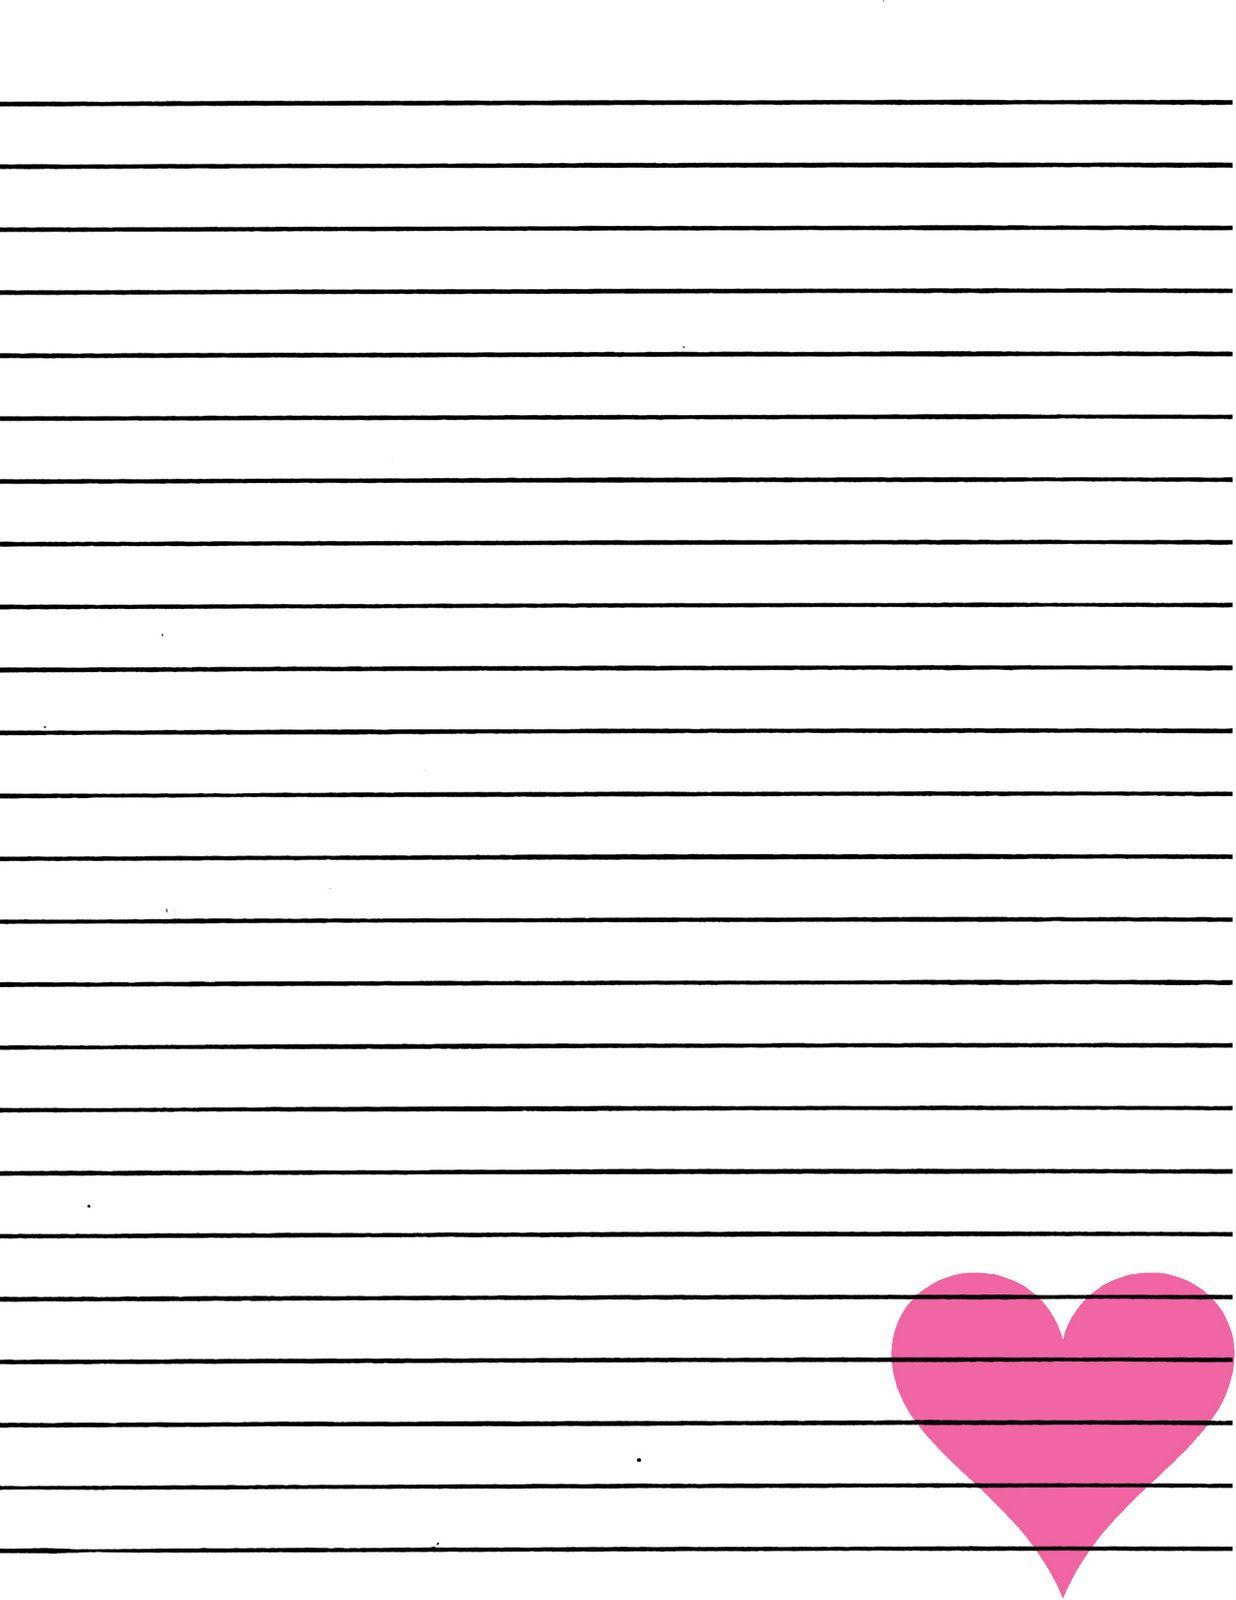 image about Lined Printable Paper named Pin via Amy Omessi upon Child Things to do Printable protected paper